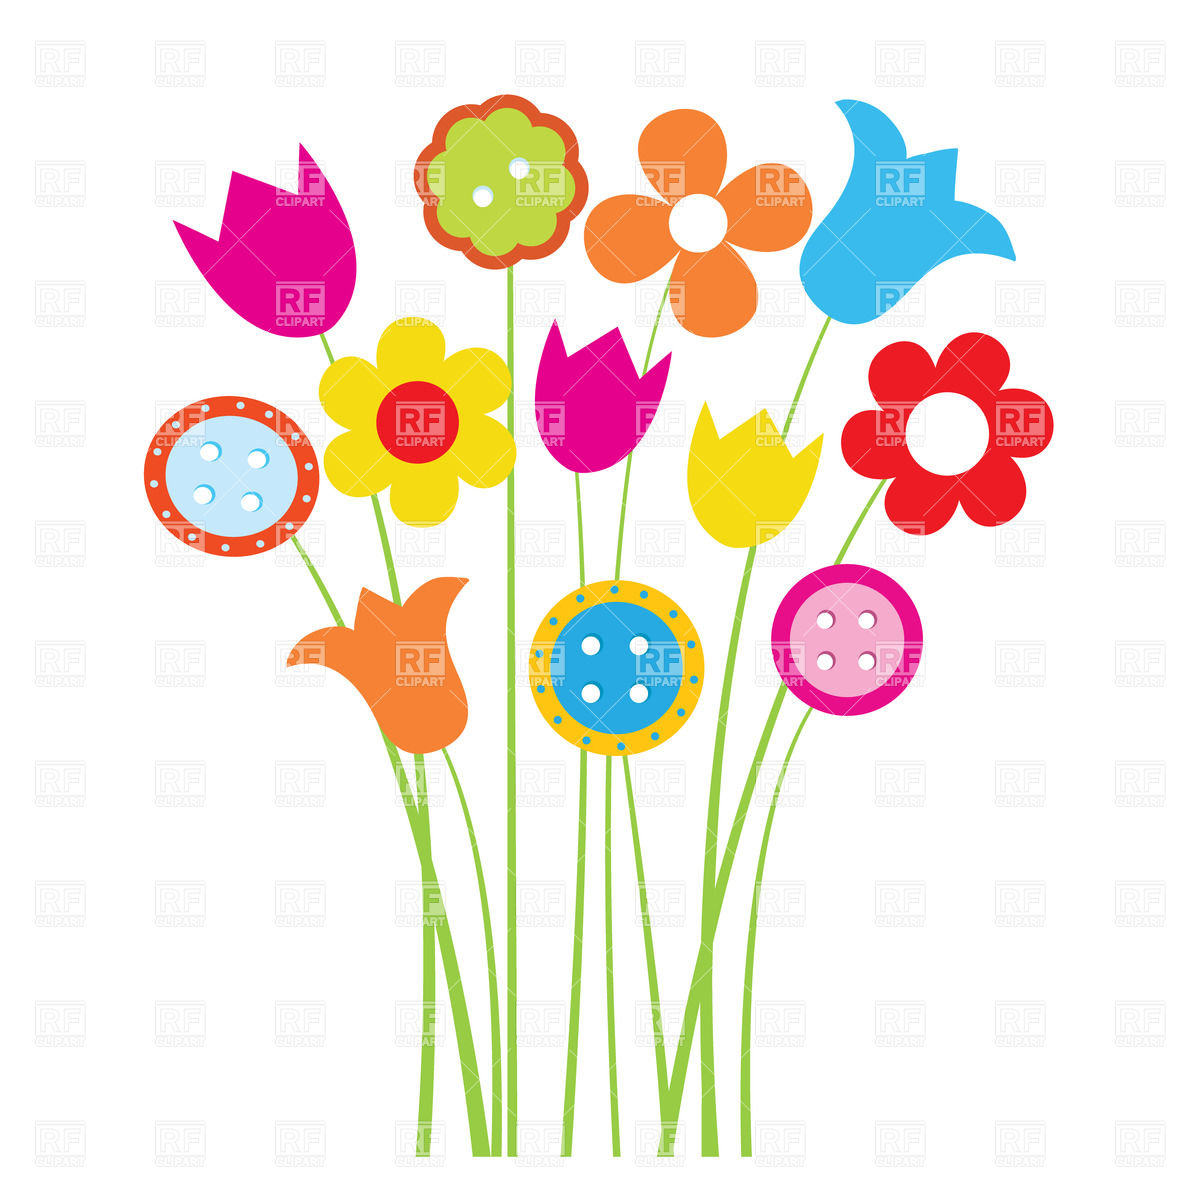 Flower clipart for kids at getdrawings free for personal use 1200x1200 free clipart pictures of flowers mightylinksfo